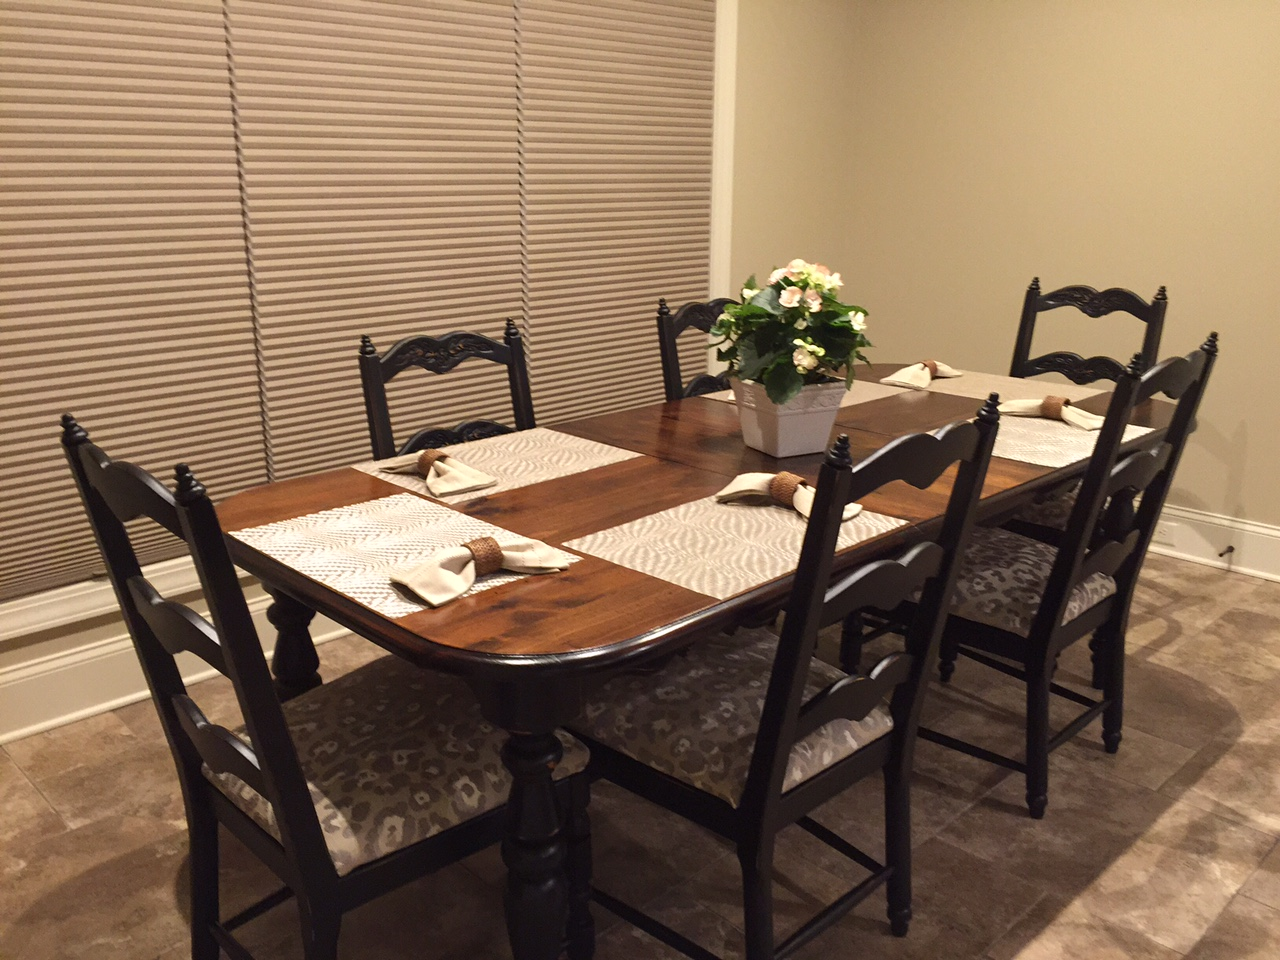 Dining Room Table Refinishing Ideas Part - 28: REFINISHED DINING TABLE AND CHAIR SET